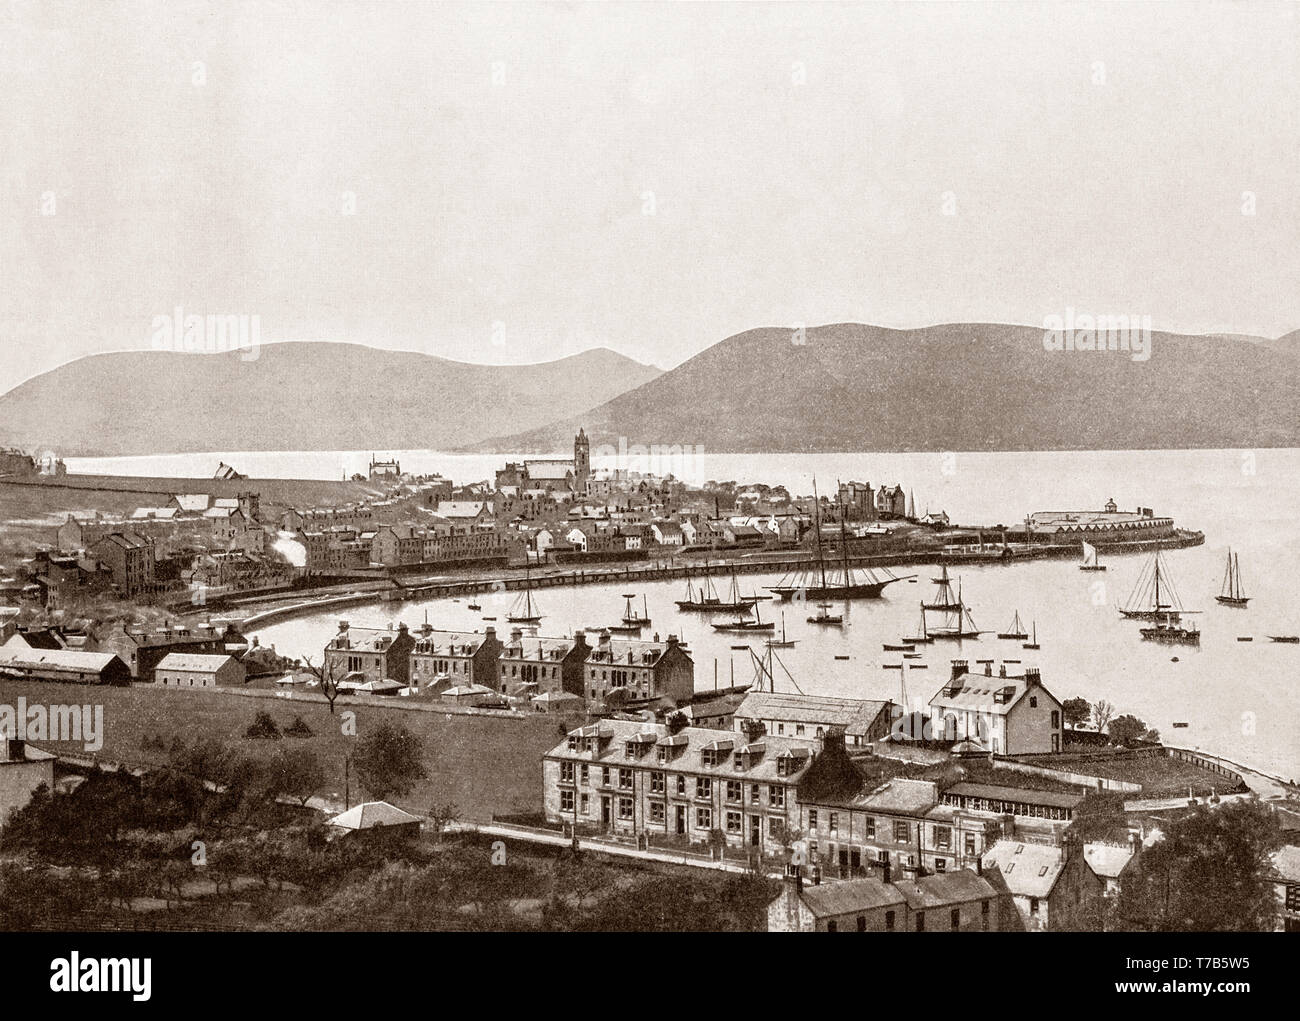 A late 19th Century view of the sheltered bay of Gourock, a town on the East shore of the upper Firth of Clyde in the Inverclyde council area in the West of Scotland. Like many Scottish seaside towns, Gourock's tourist heyday was in the latter half of the nineteenth century and the first half of the twentieth. - Stock Image